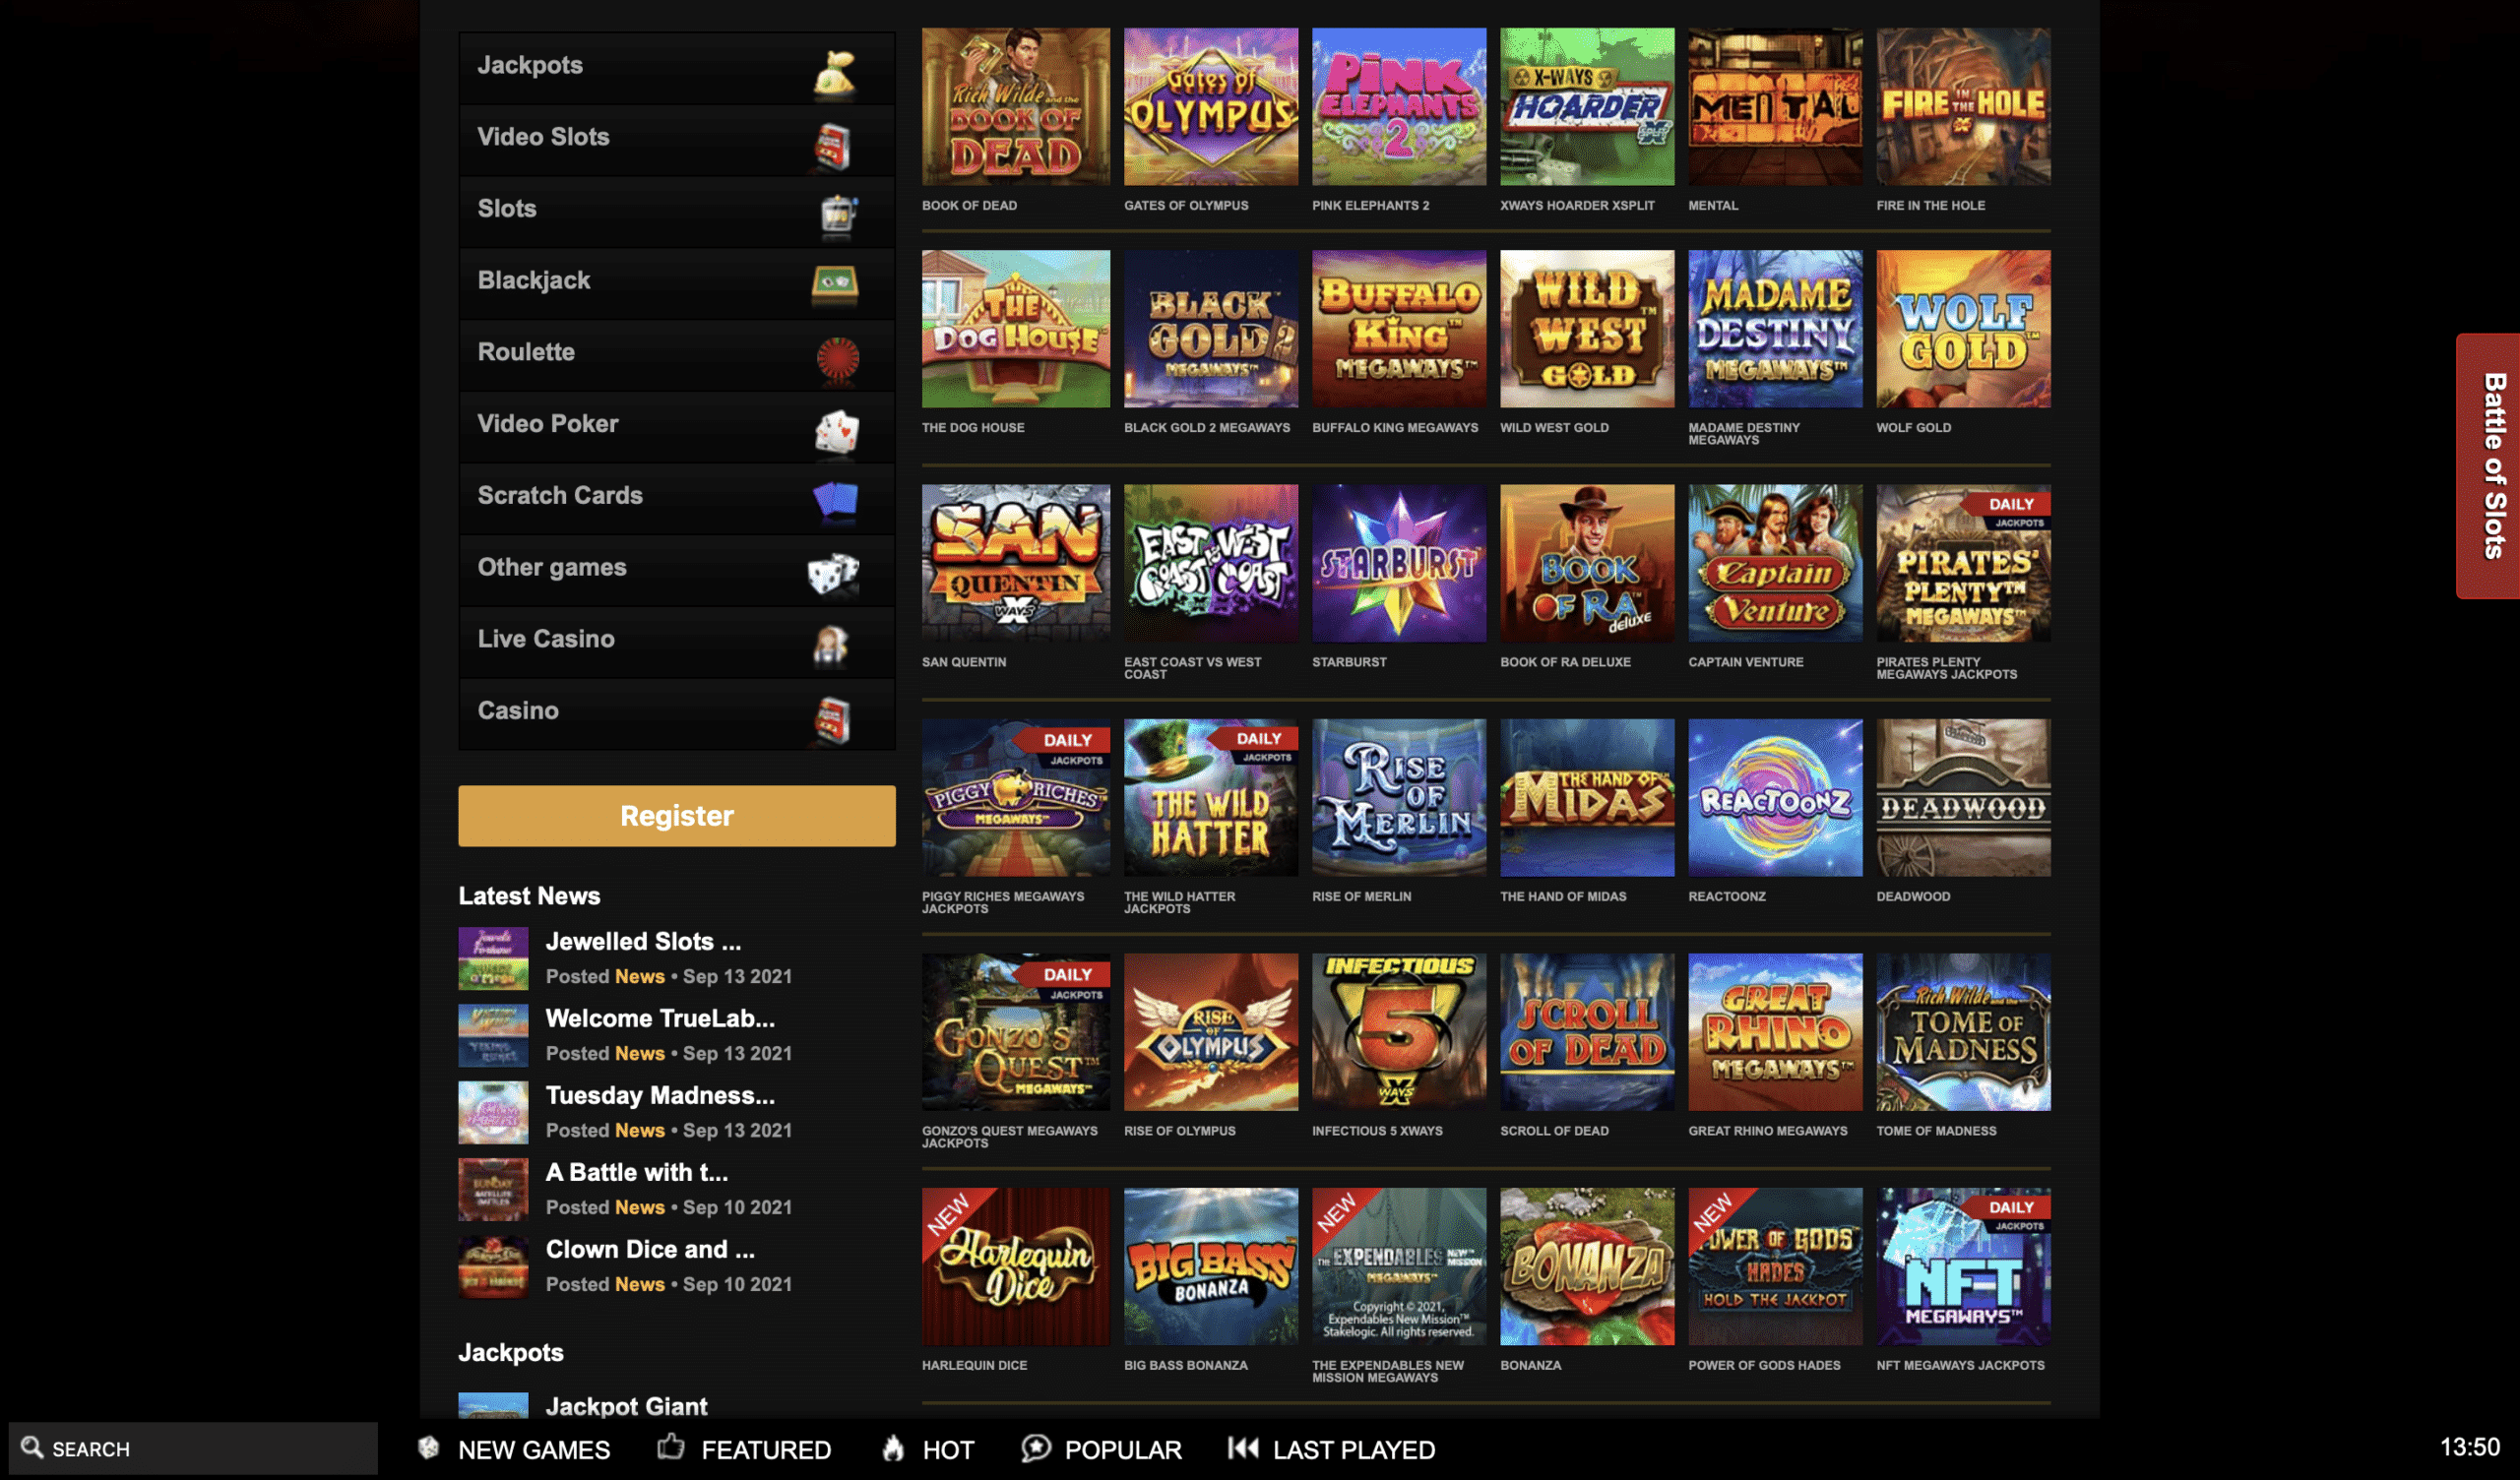 Videoslots Game Selection